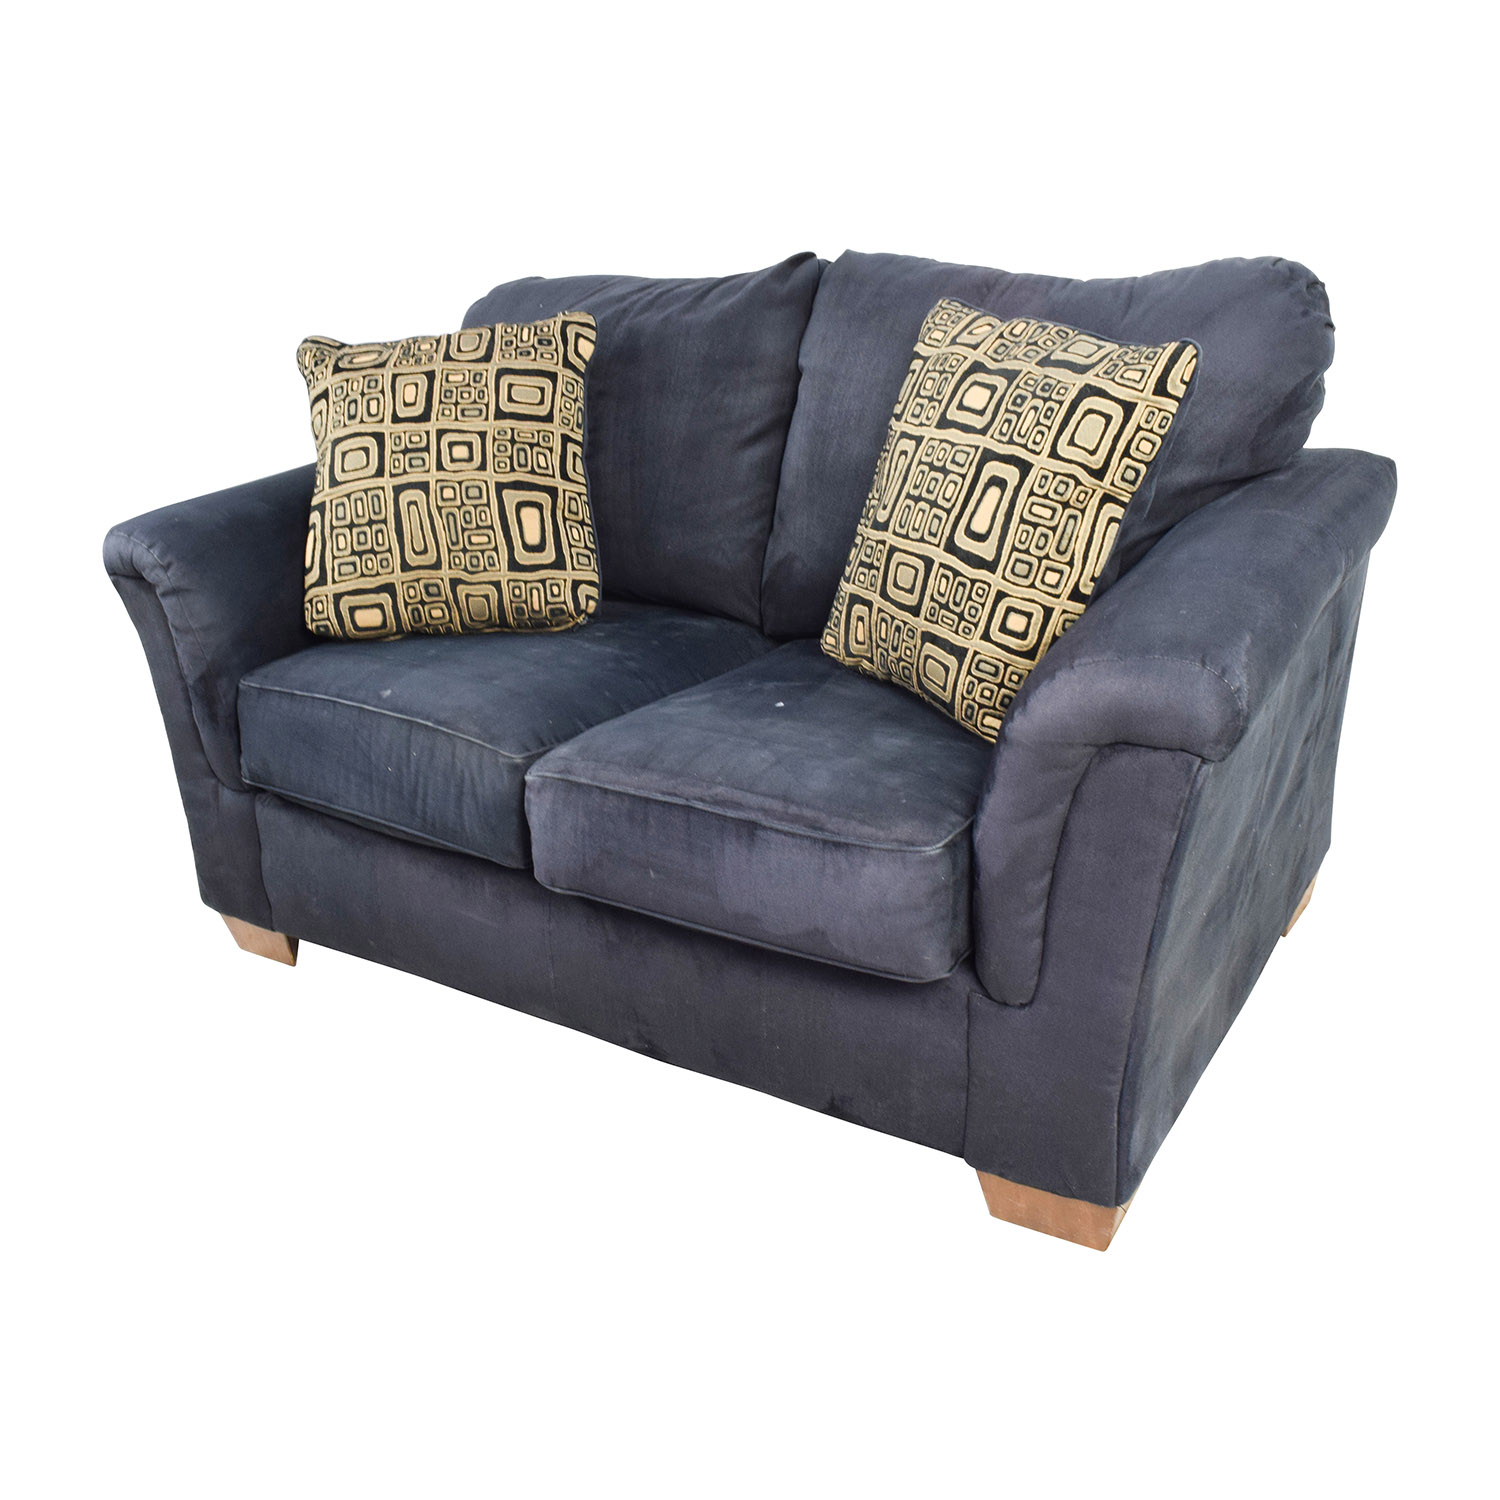 Attirant ... Ashley Furniture Ashley Furniture Janley Loveseat Sofas ...